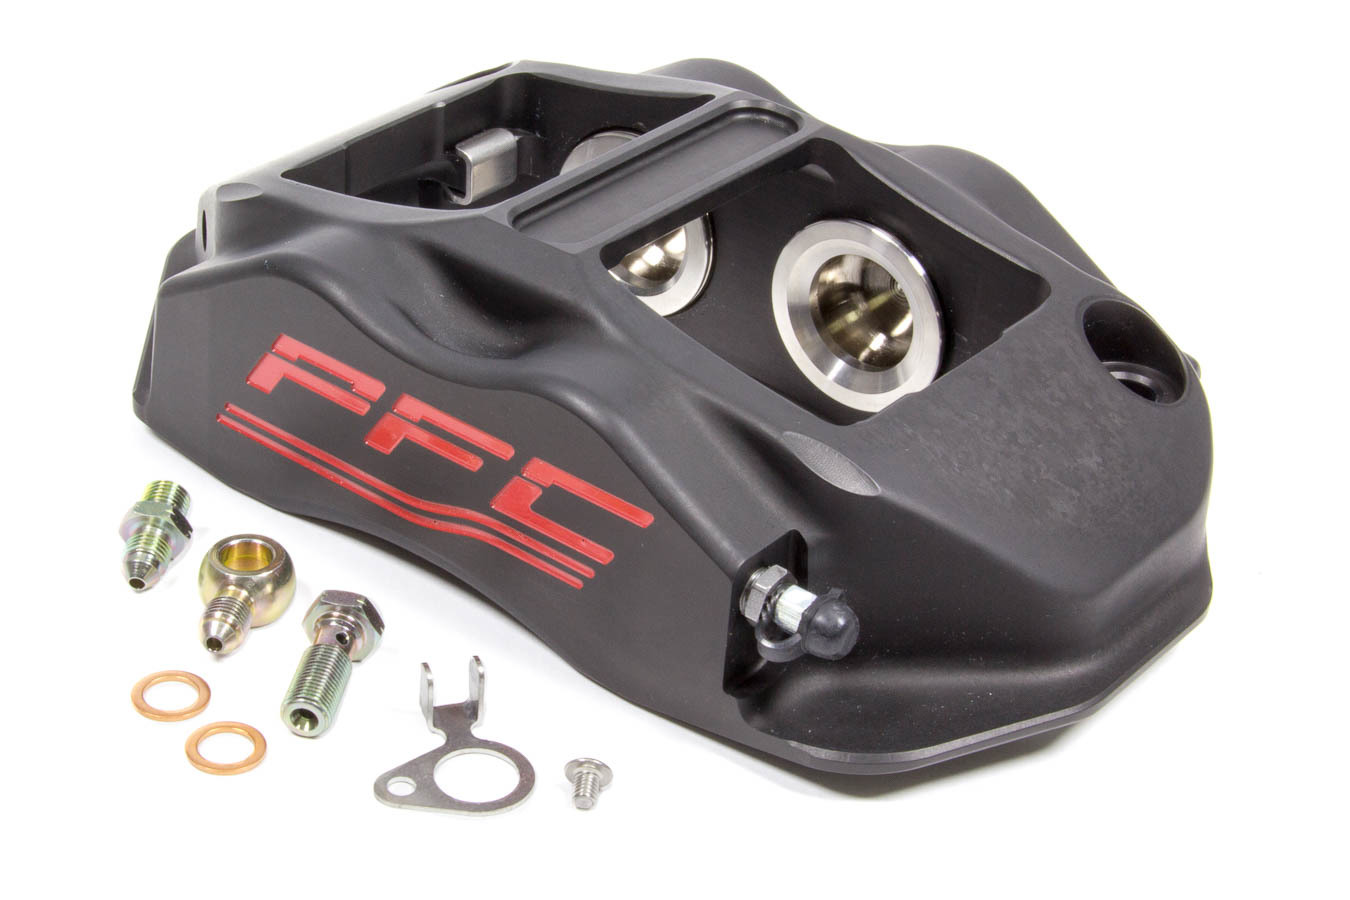 Performance Friction 94-323-410-440-01A Brake Caliper, ZR94, Driver Side, Leading, 4 Piston, Aluminum, Black Anodize, 12.716 in OD x 1.250 in Thick Rotor, 7.00 in Radial Mount, Each